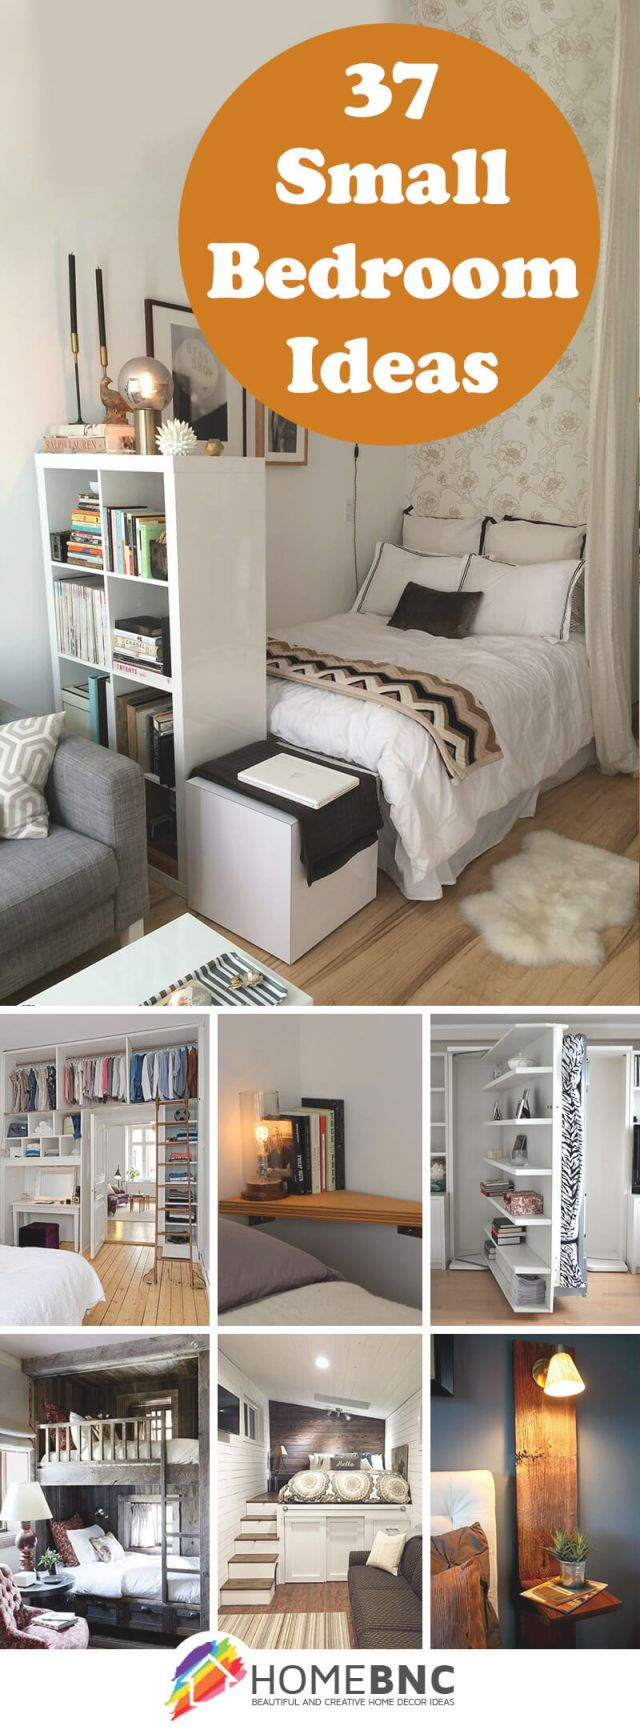 37 Best Small Bedroom Ideas And Designs For 2020 inside Decorating Ideas For Small Bedroom